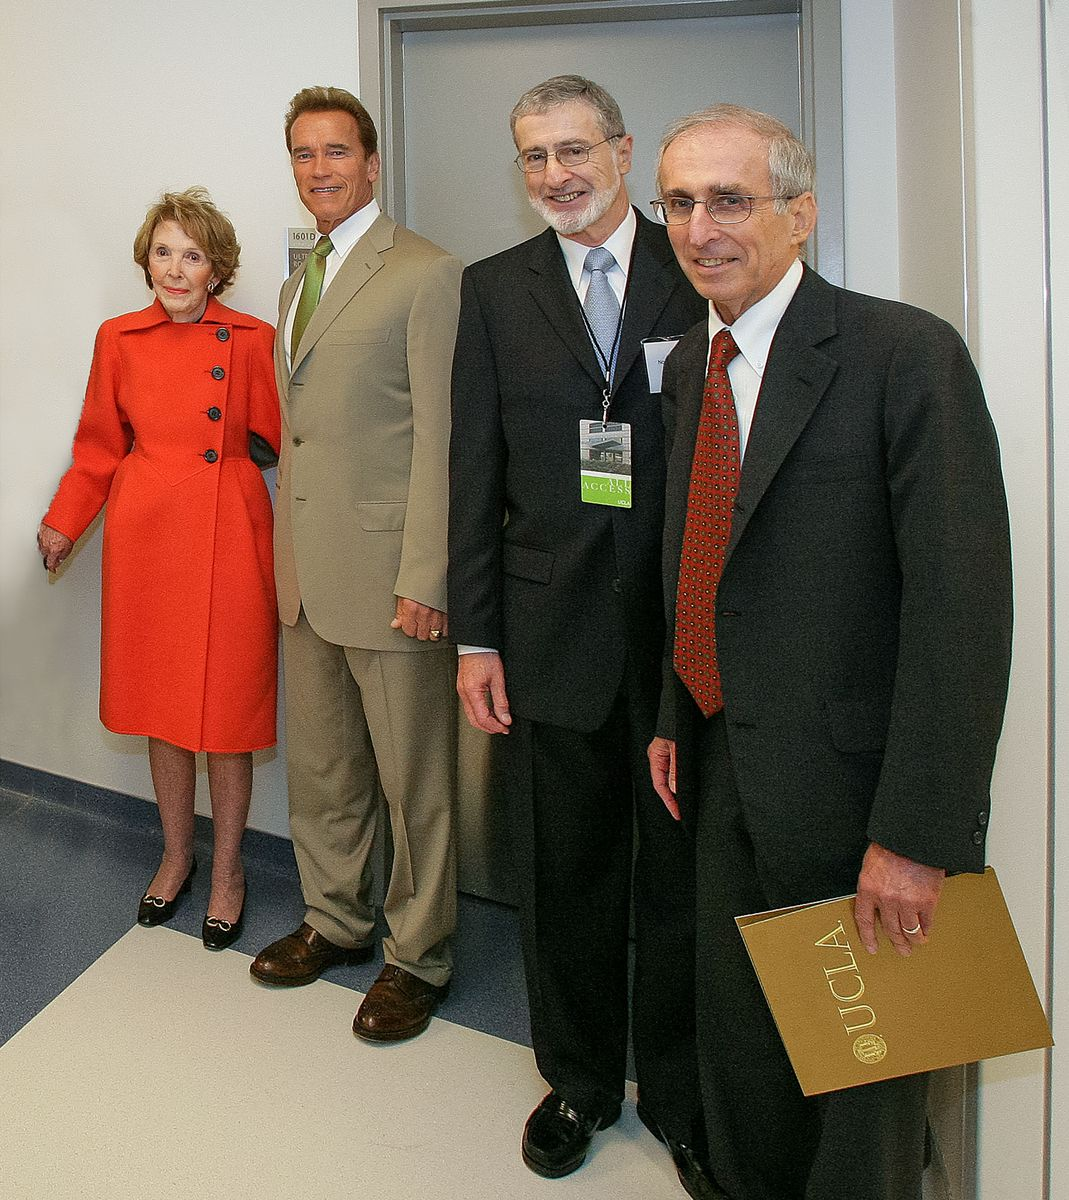 Levey with dignitaries